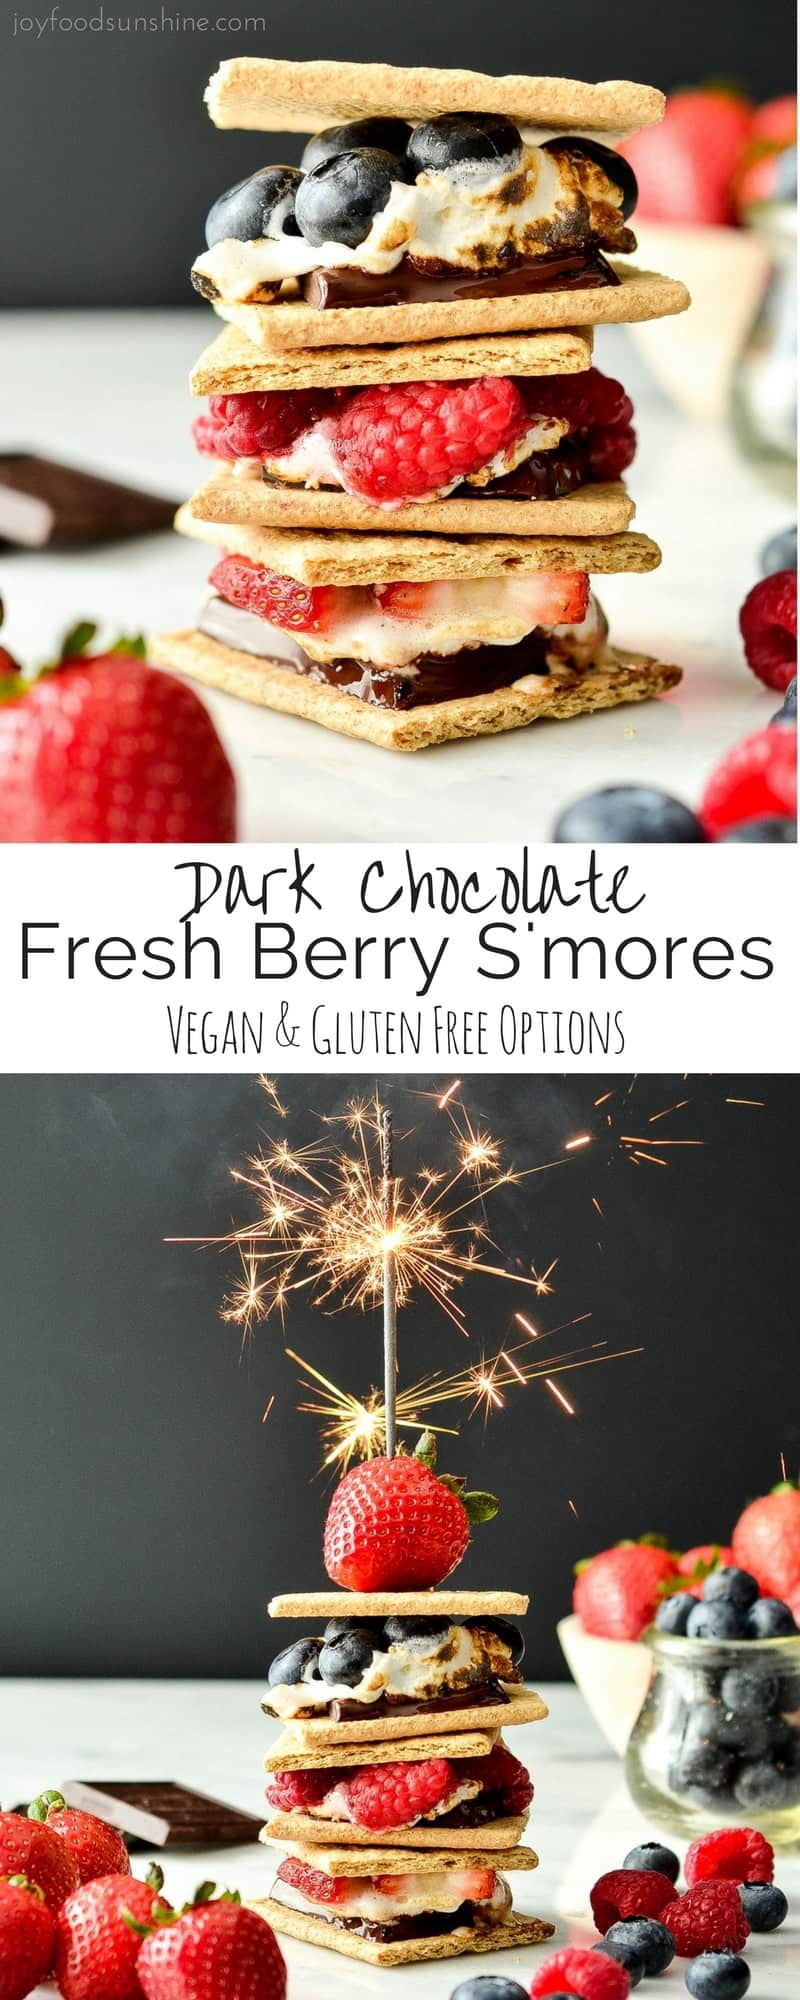 These Dark Chocolate Fresh Berry S'mores are the perfect, easy summer dessert! Great for your 4th of July celebrations and bonfires! Vegan and gluten-free options!